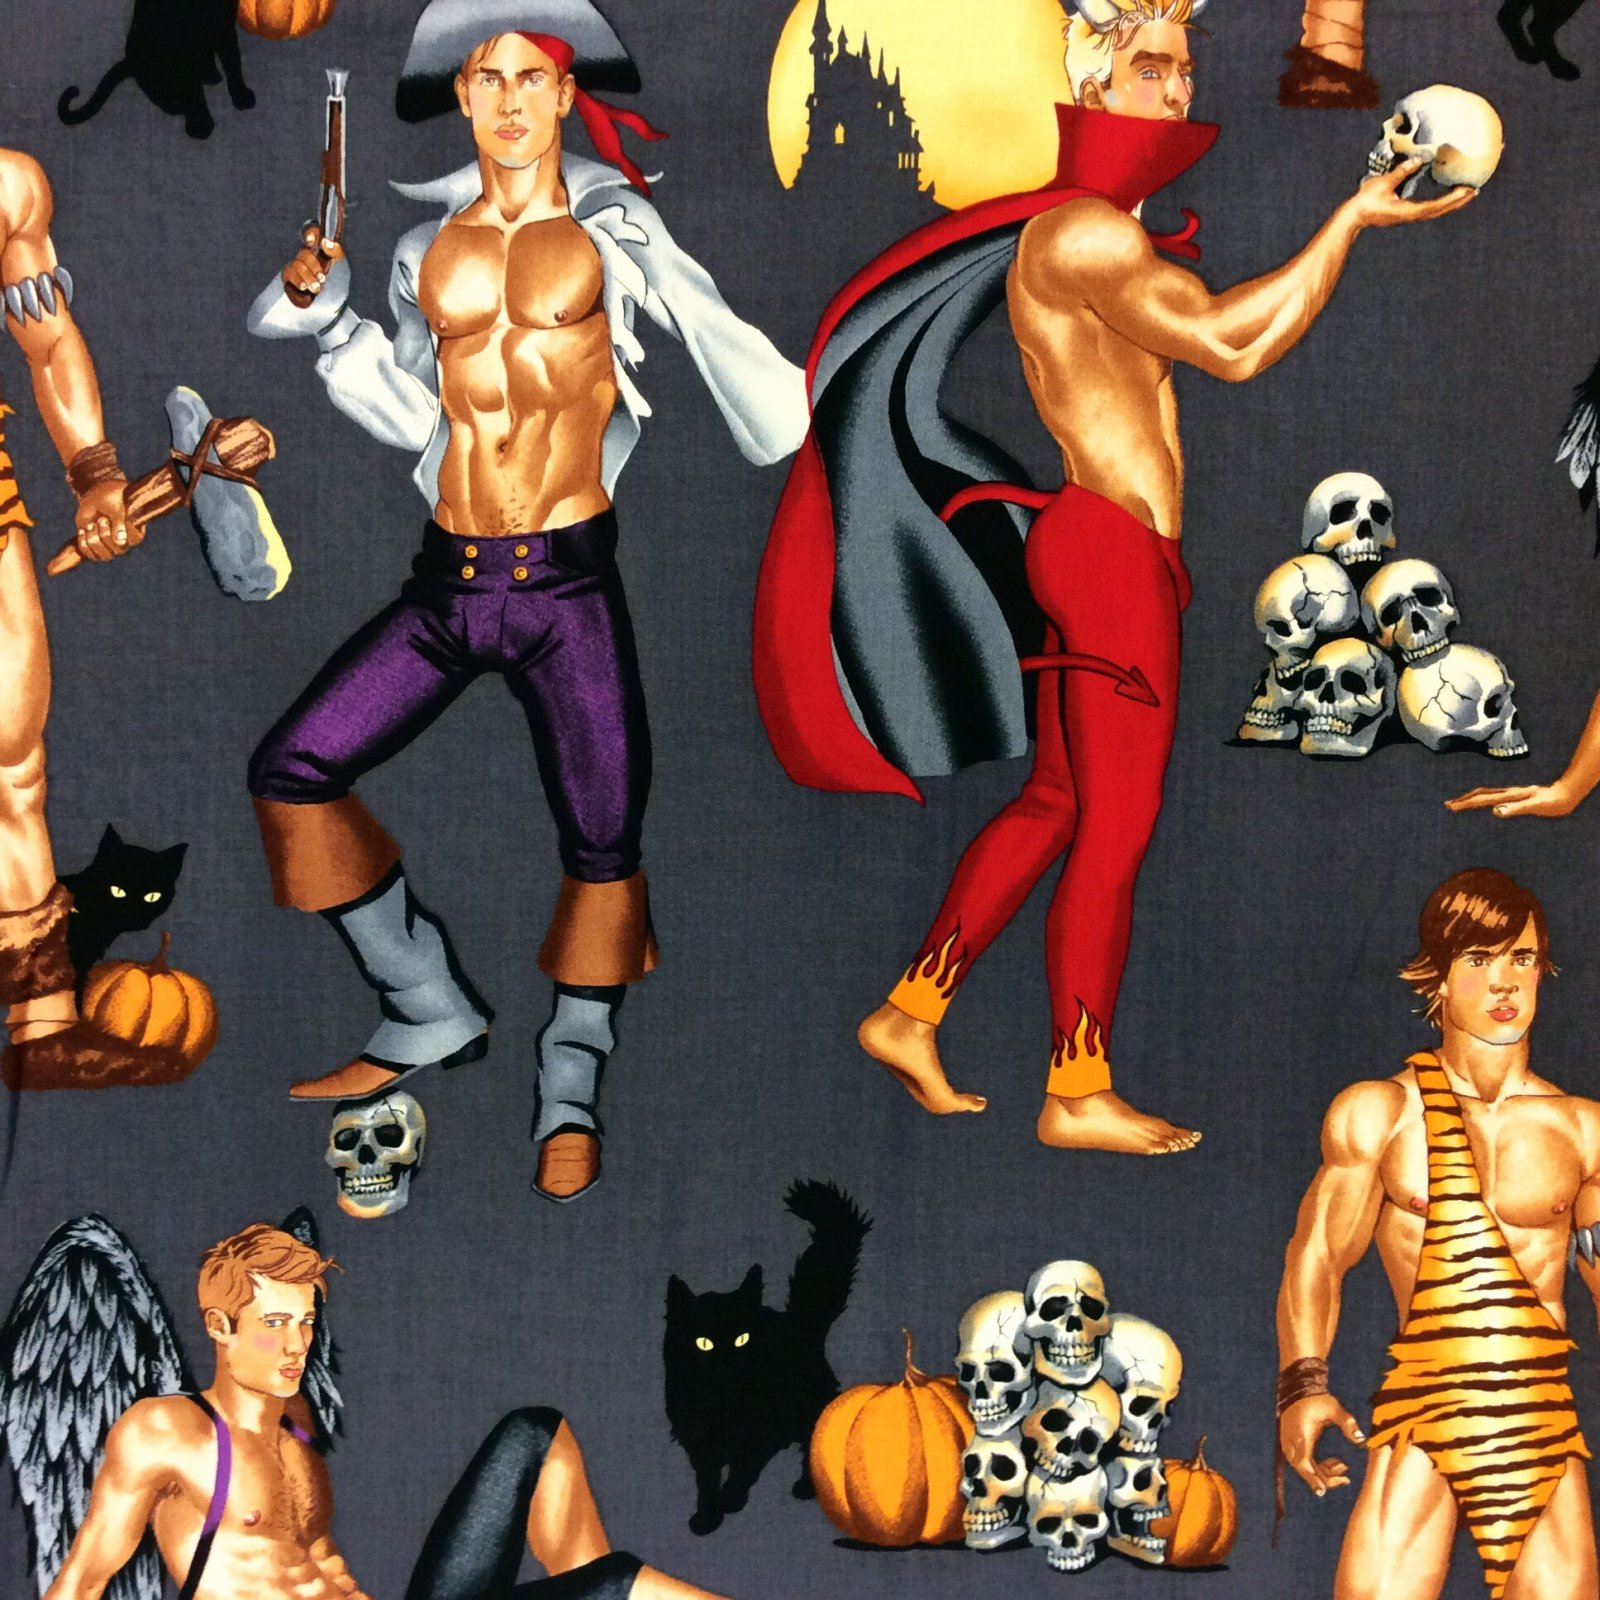 MD309 Halloween Sexy Pin Up Men Hunks Devil Pirate Cave Man Cotton Quilt Fabric